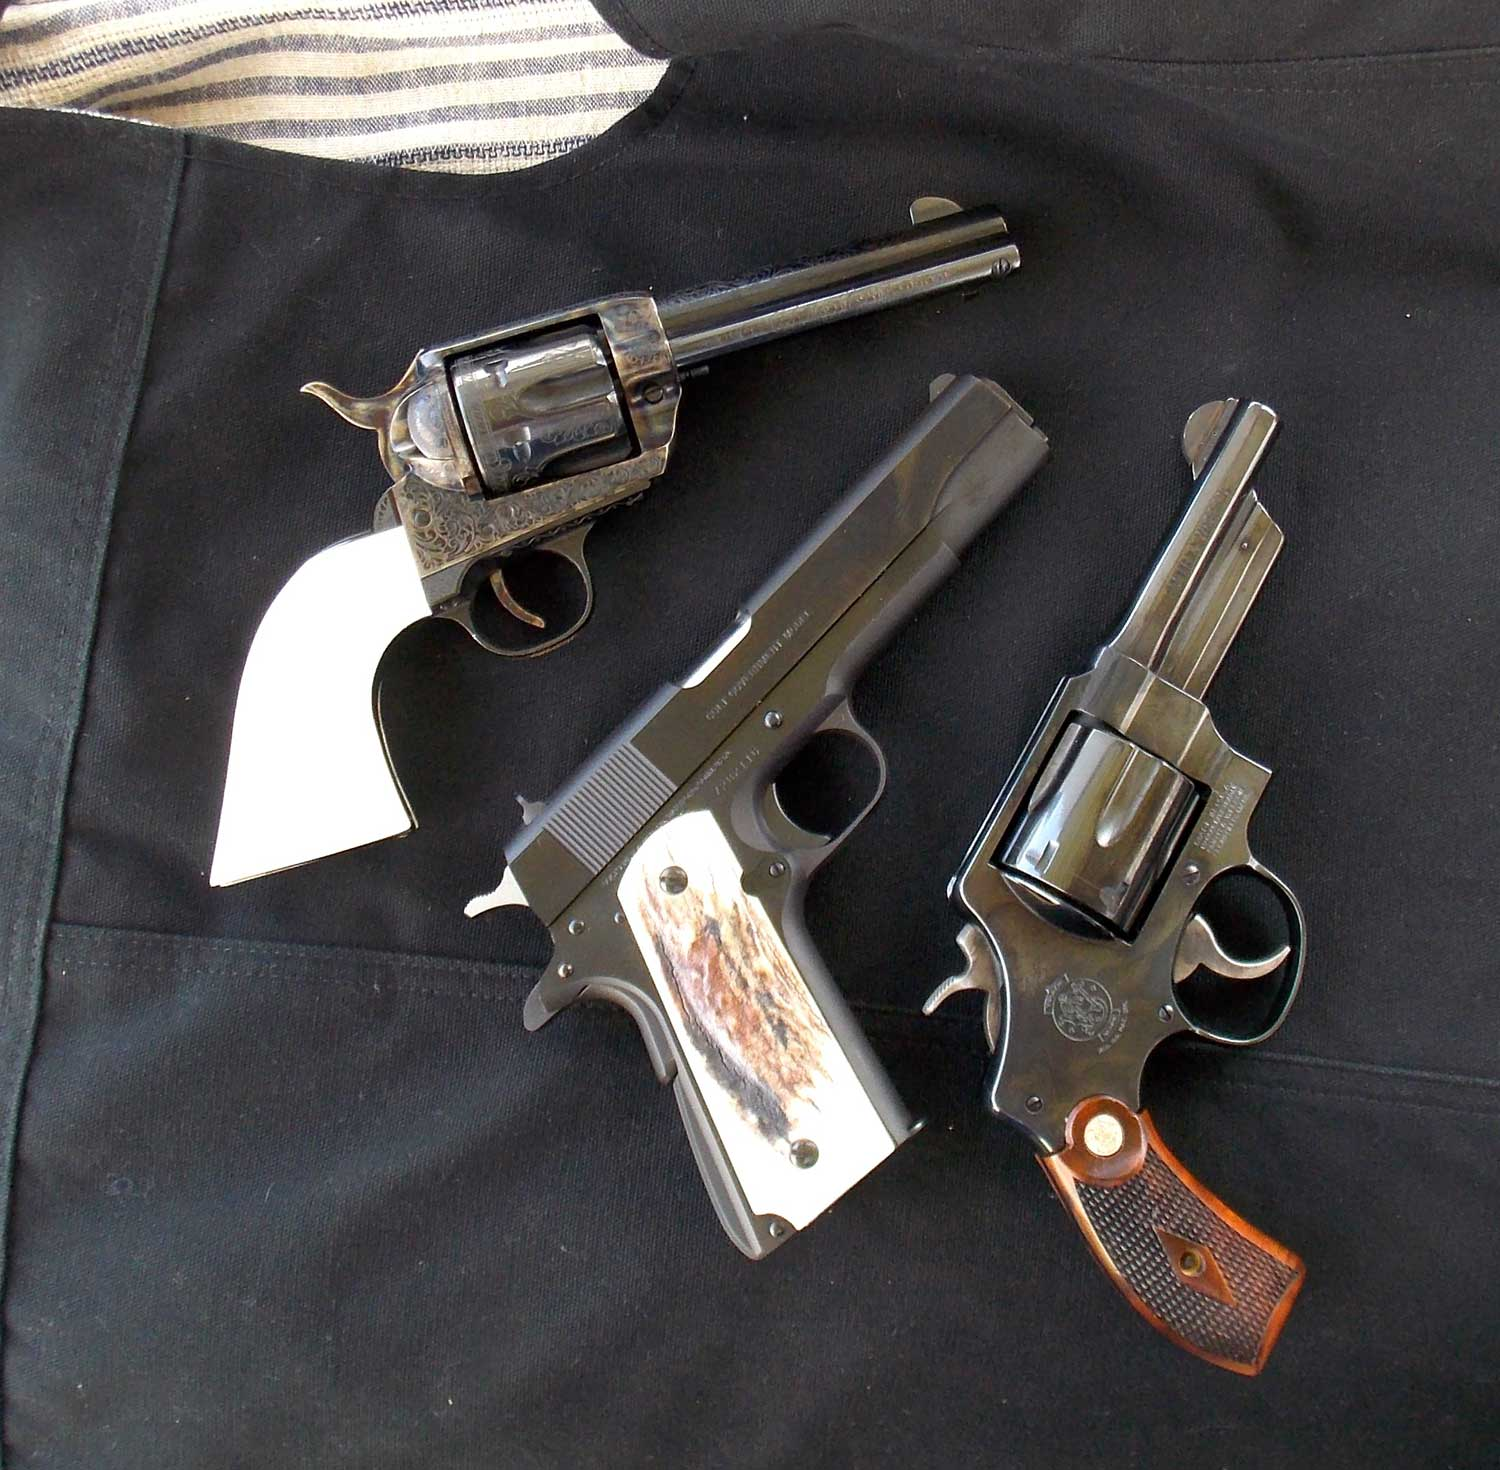 2 revolver and semi-automatic pistol